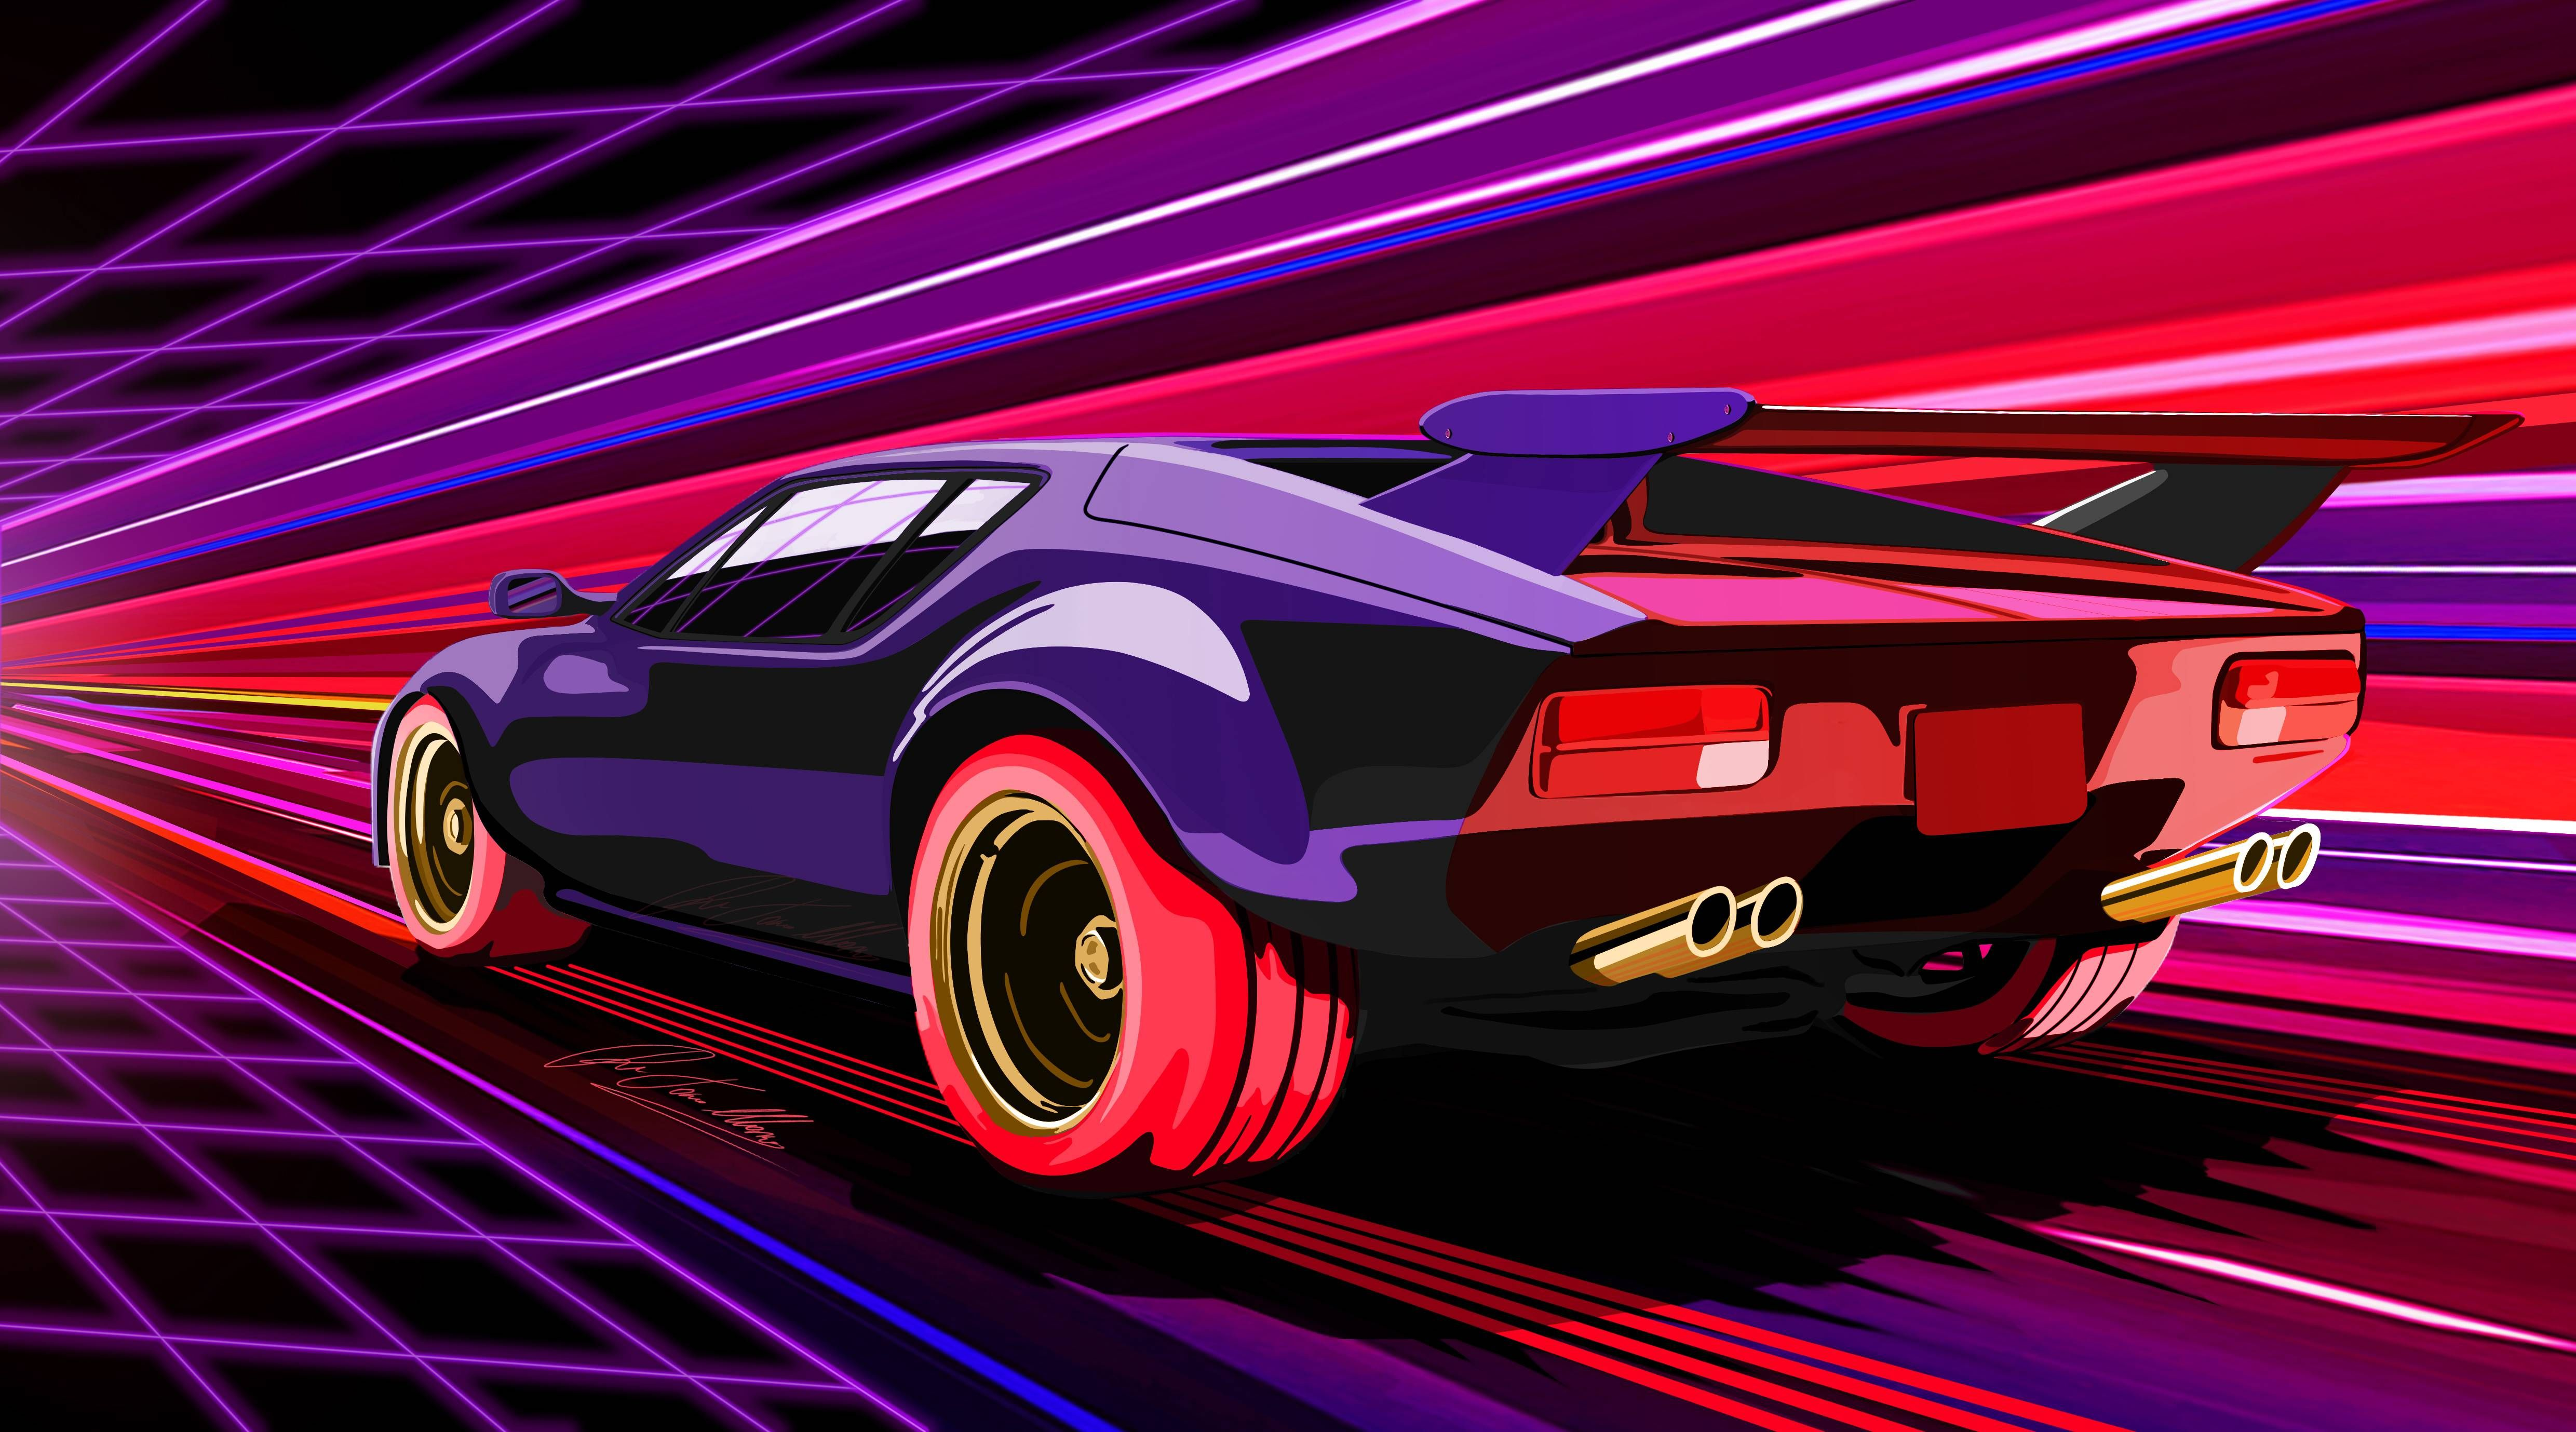 Pin By Keilynn Vines On Fun Car Artwork Pantera Car Art Cars